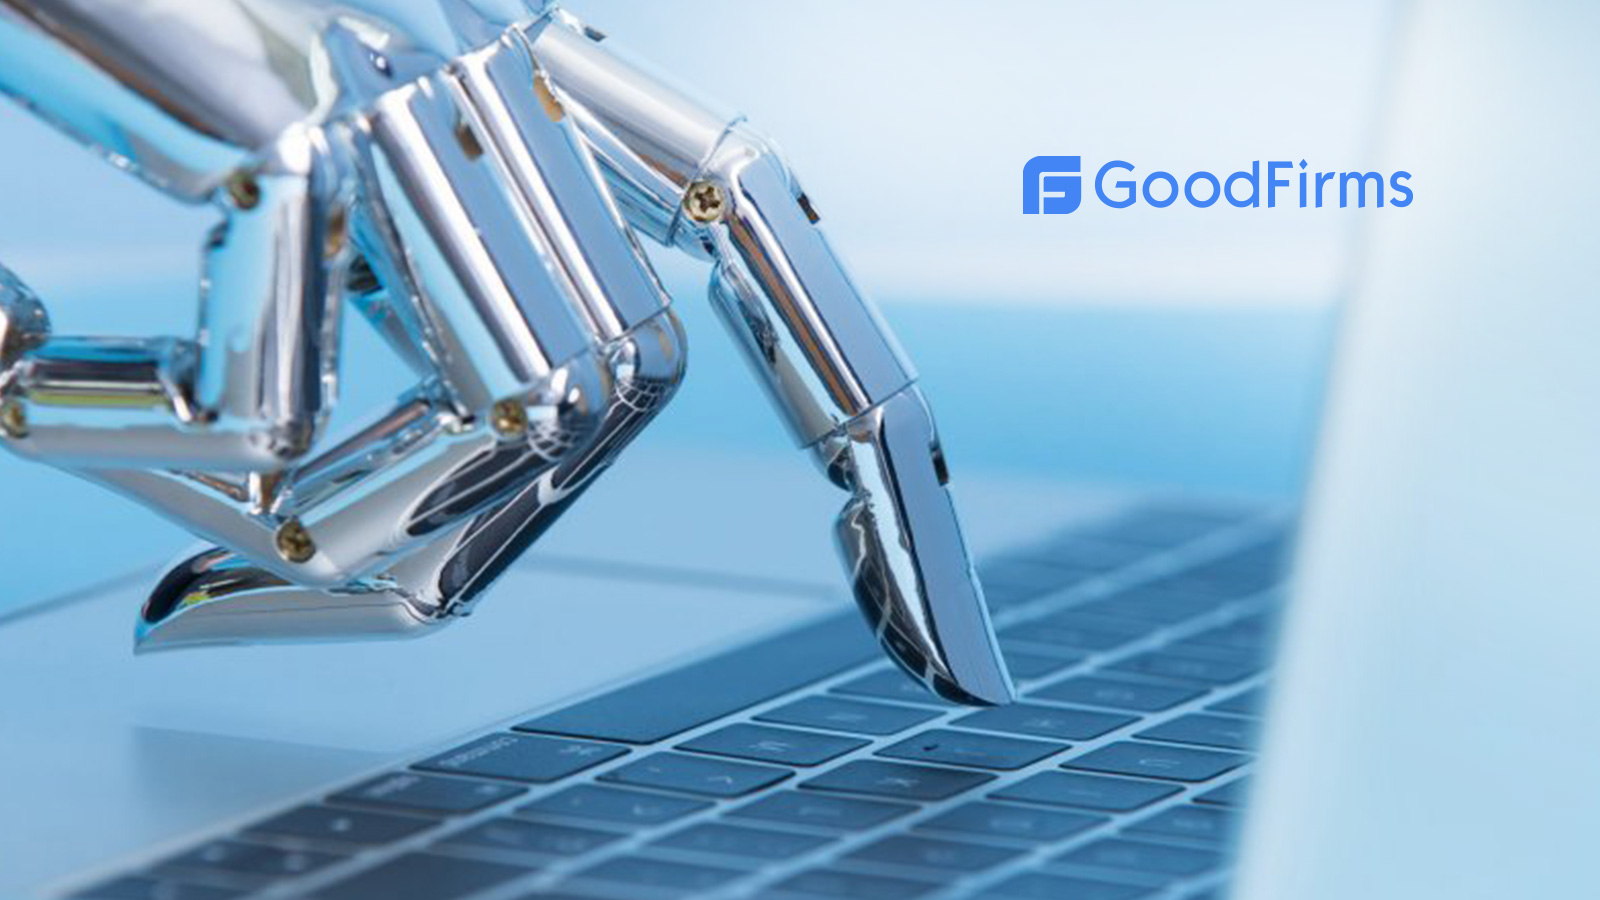 GoodFirms Research Unveils Trustworthy Technical Software Providers